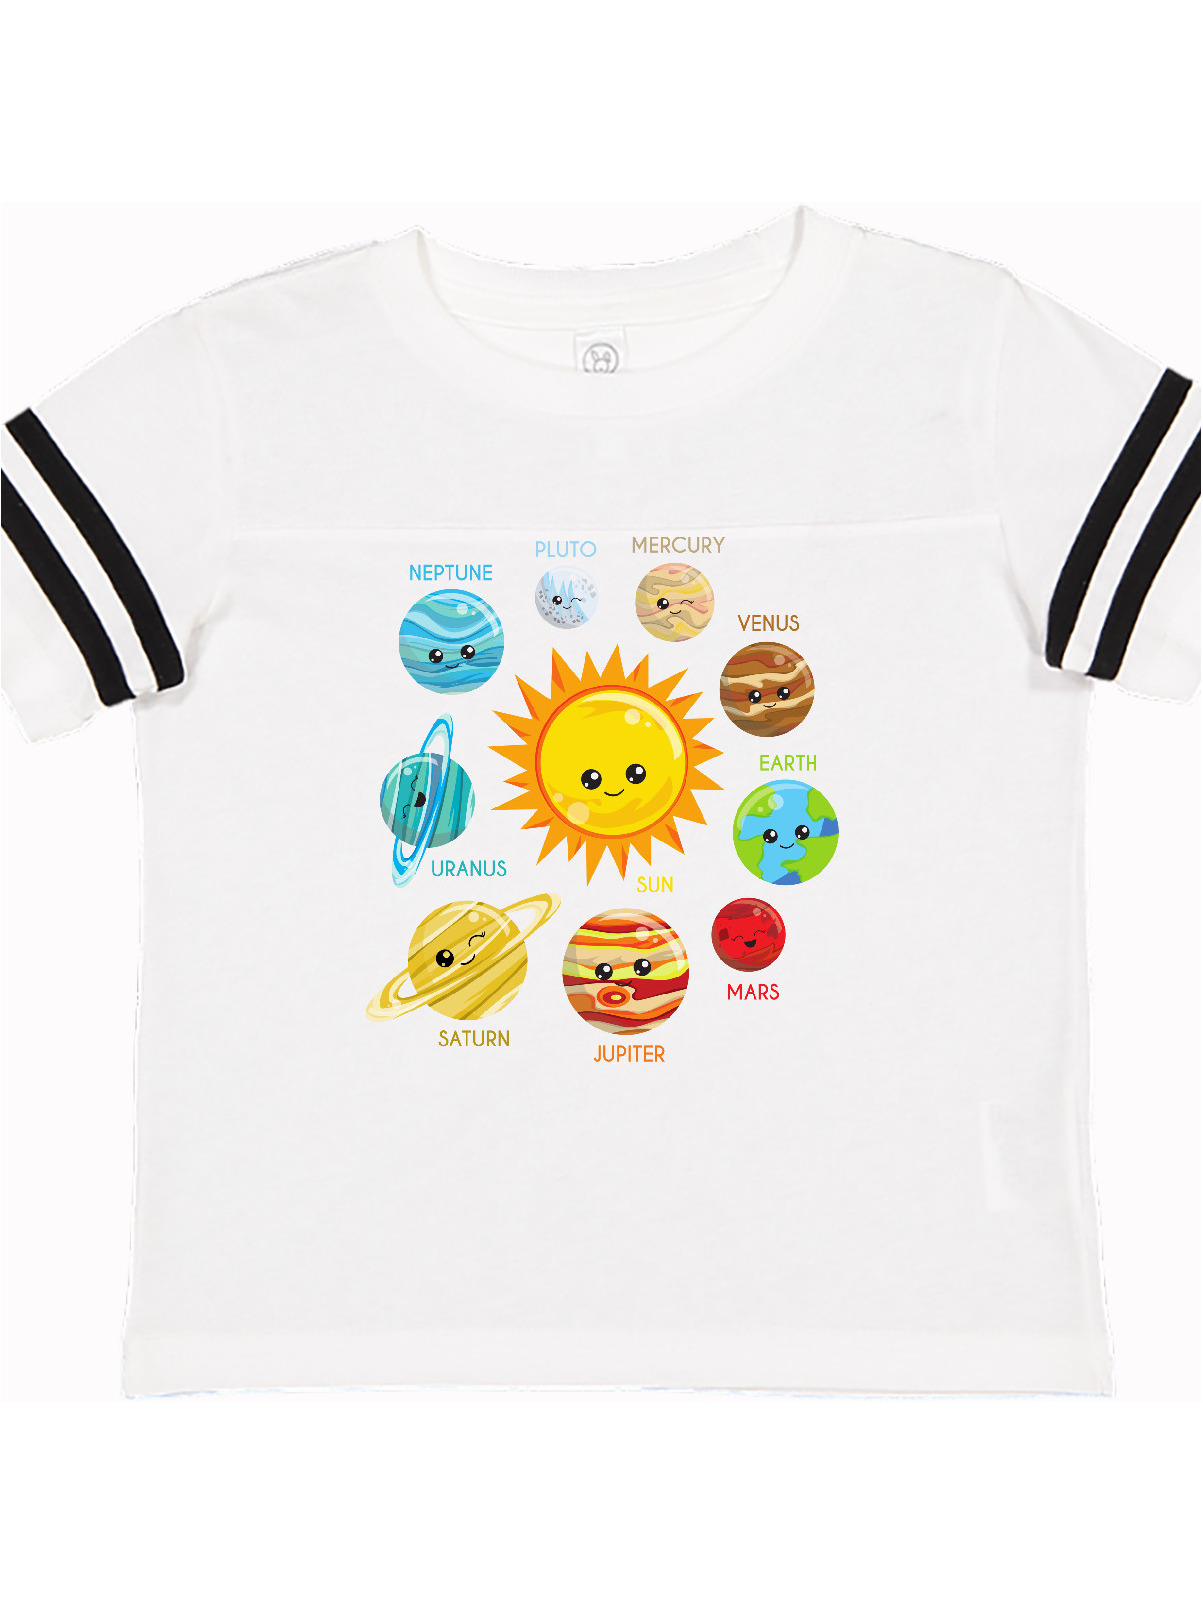 12 Months - 2T Summer Planets Around The Sun Infant//Toddler Summer Tank Top